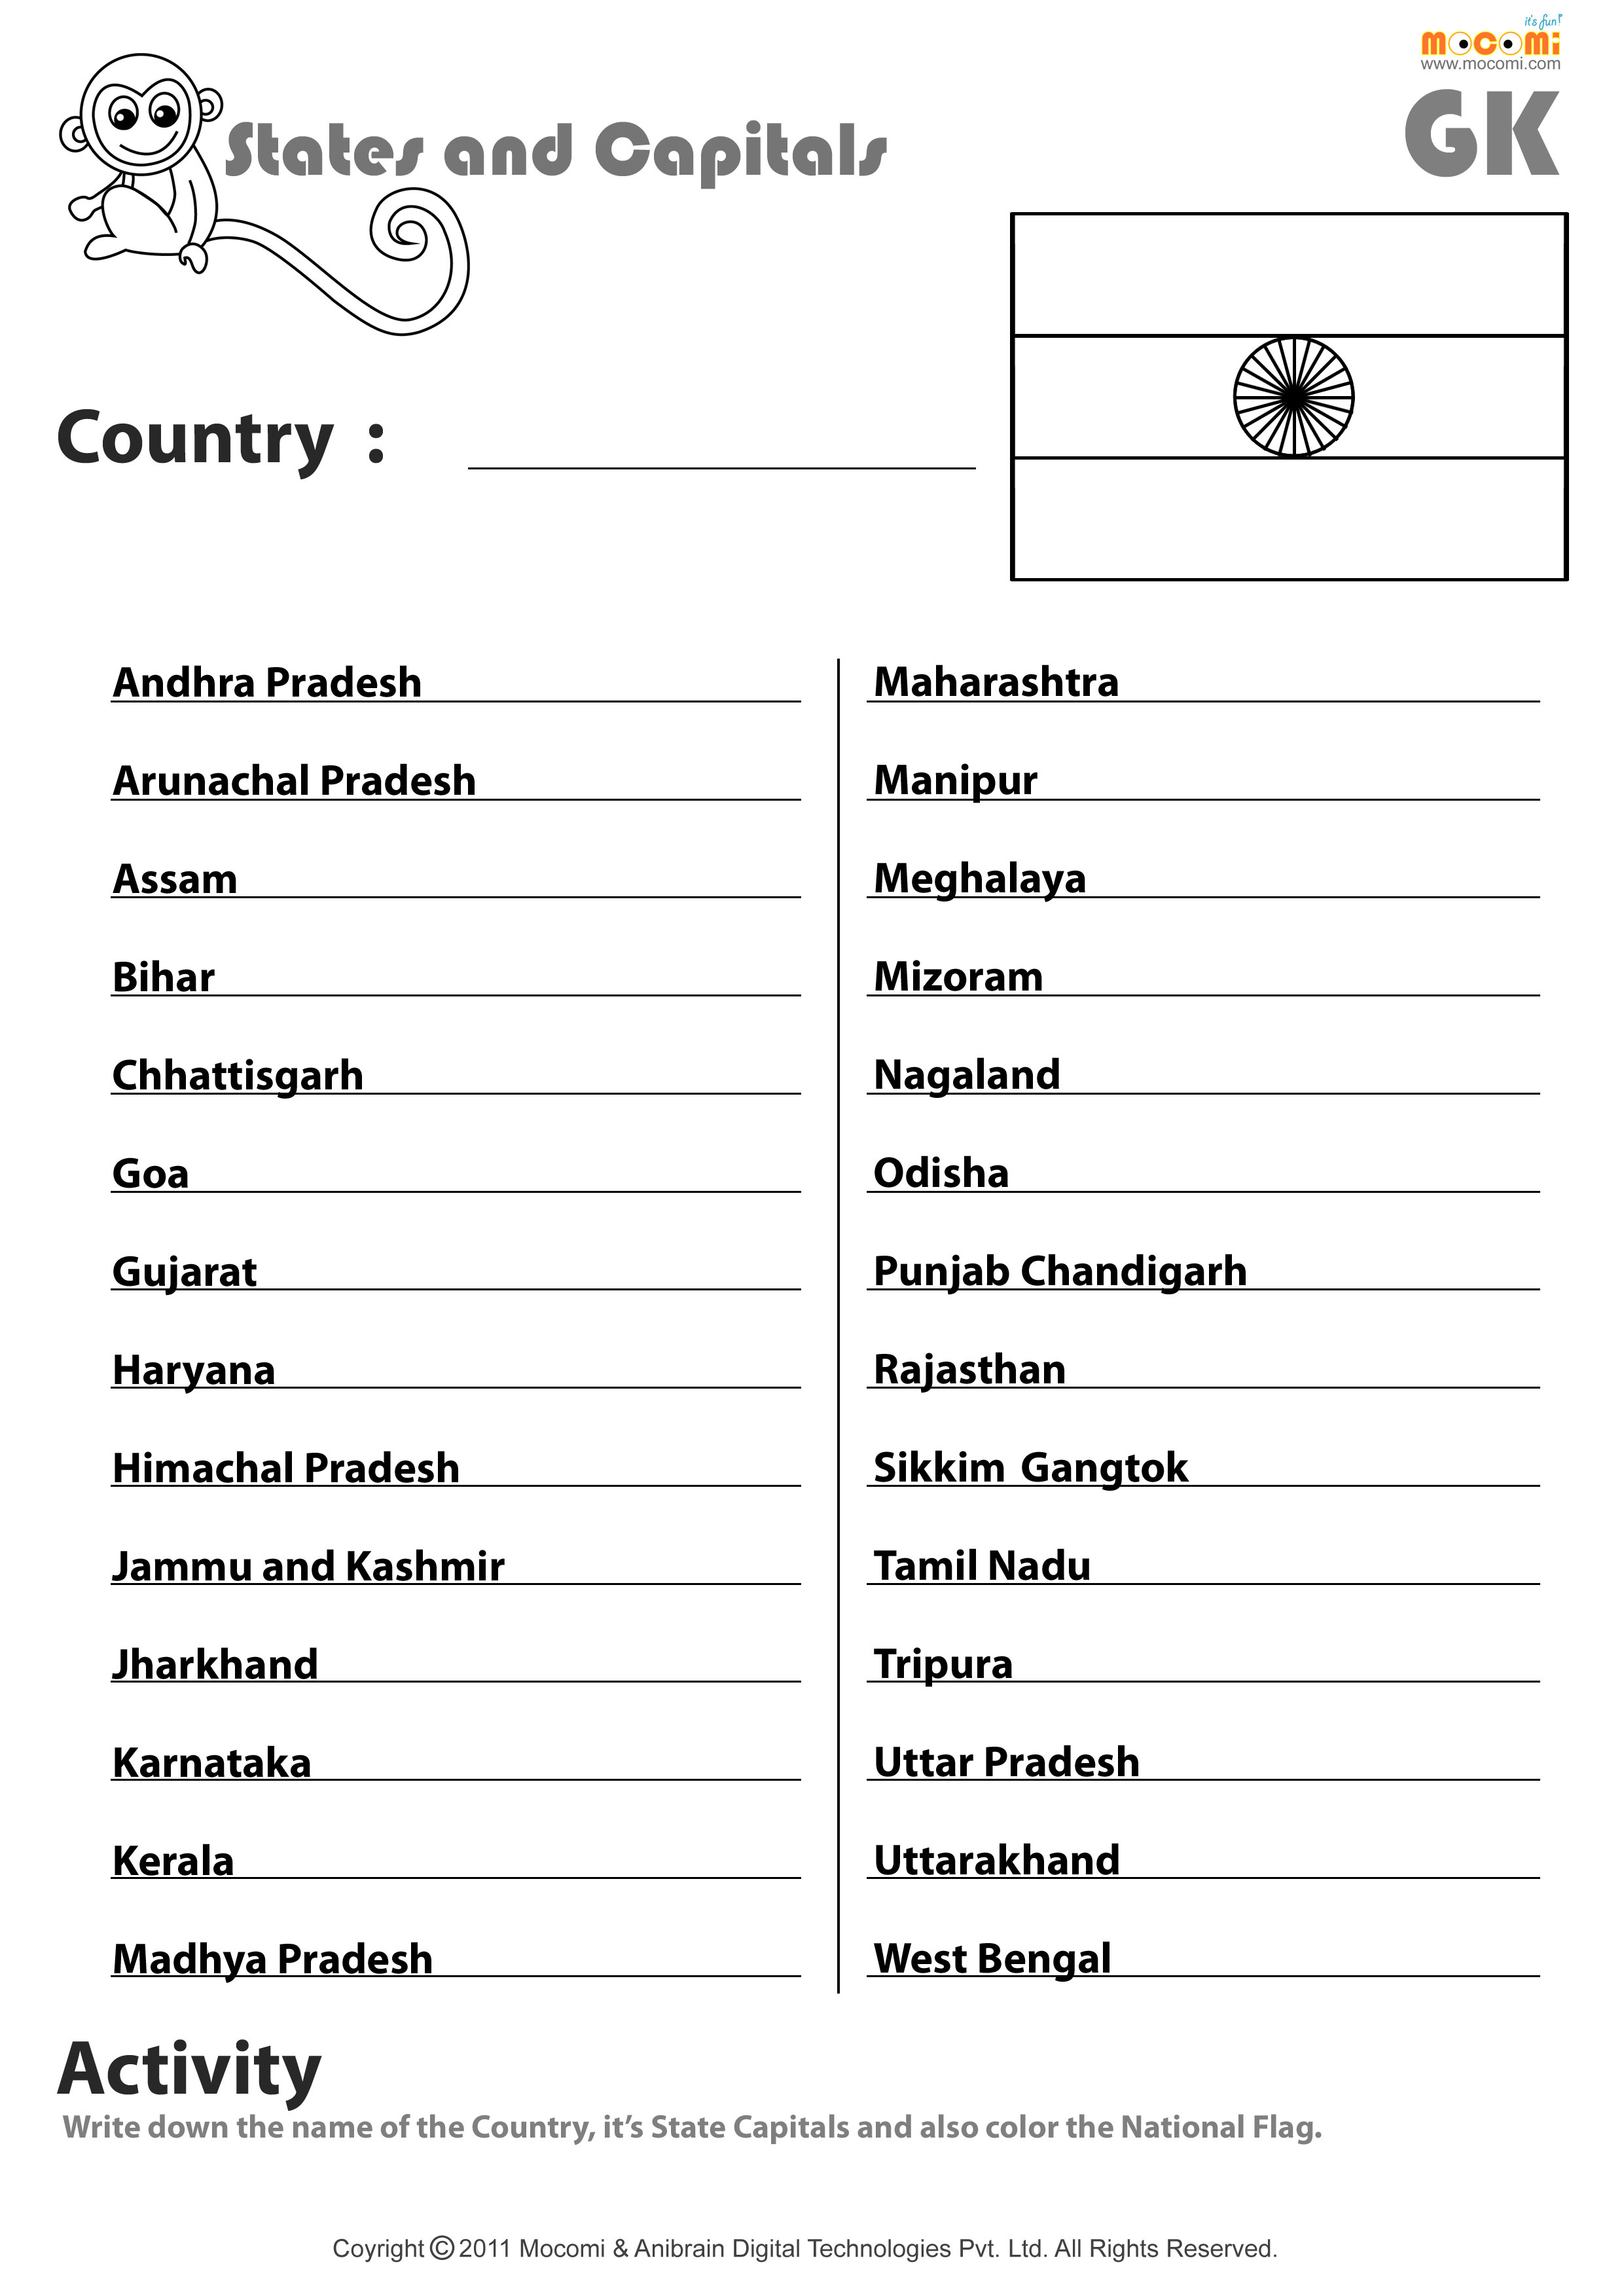 Indian States And Their Capitals - English Worksheets For Kids   Mocomi - Free Printable States And Capitals Worksheets